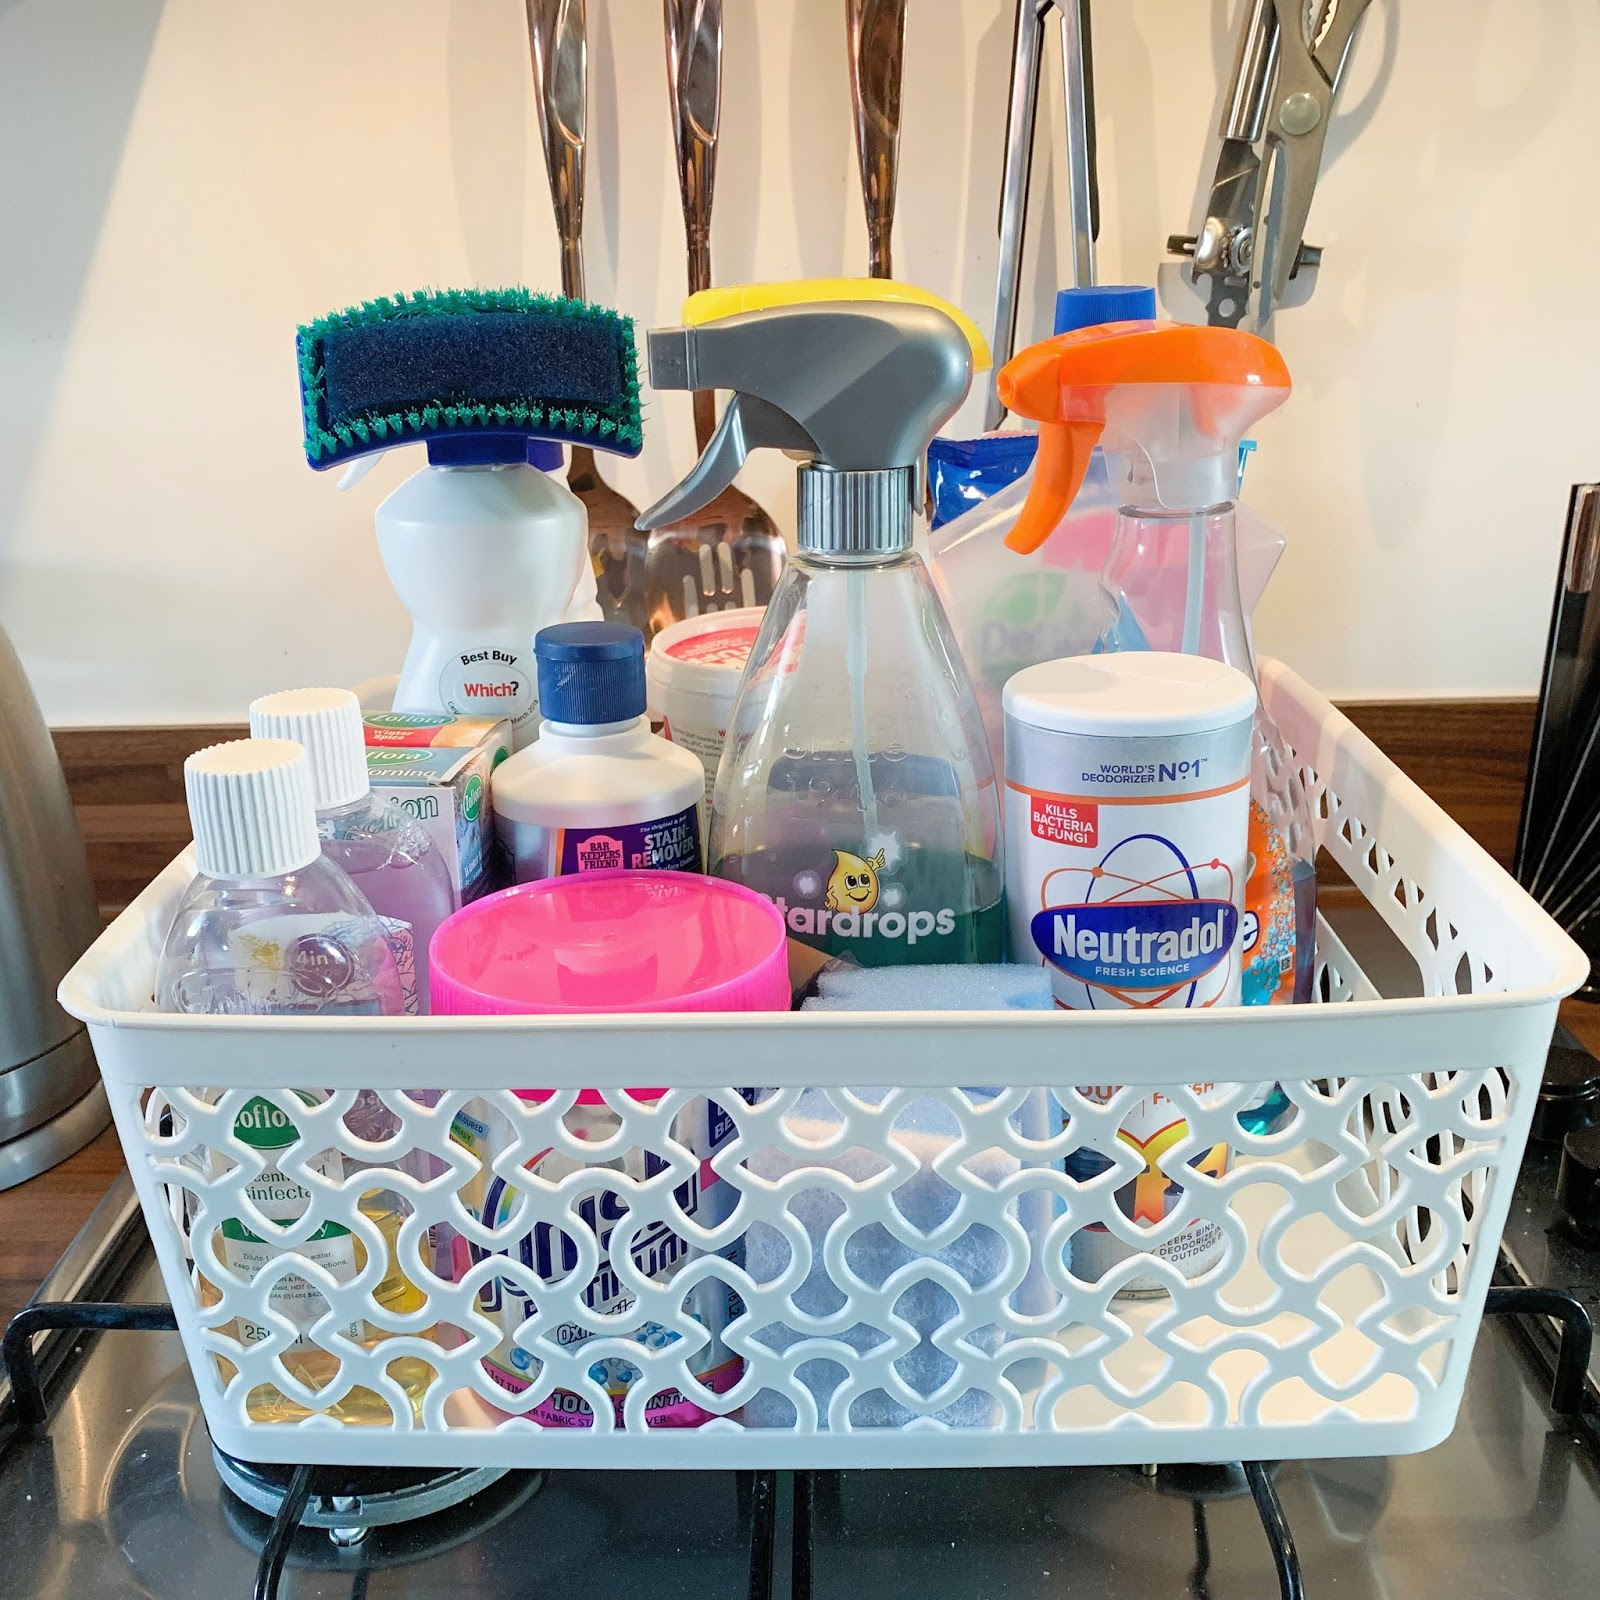 basket-of-cleaning-products